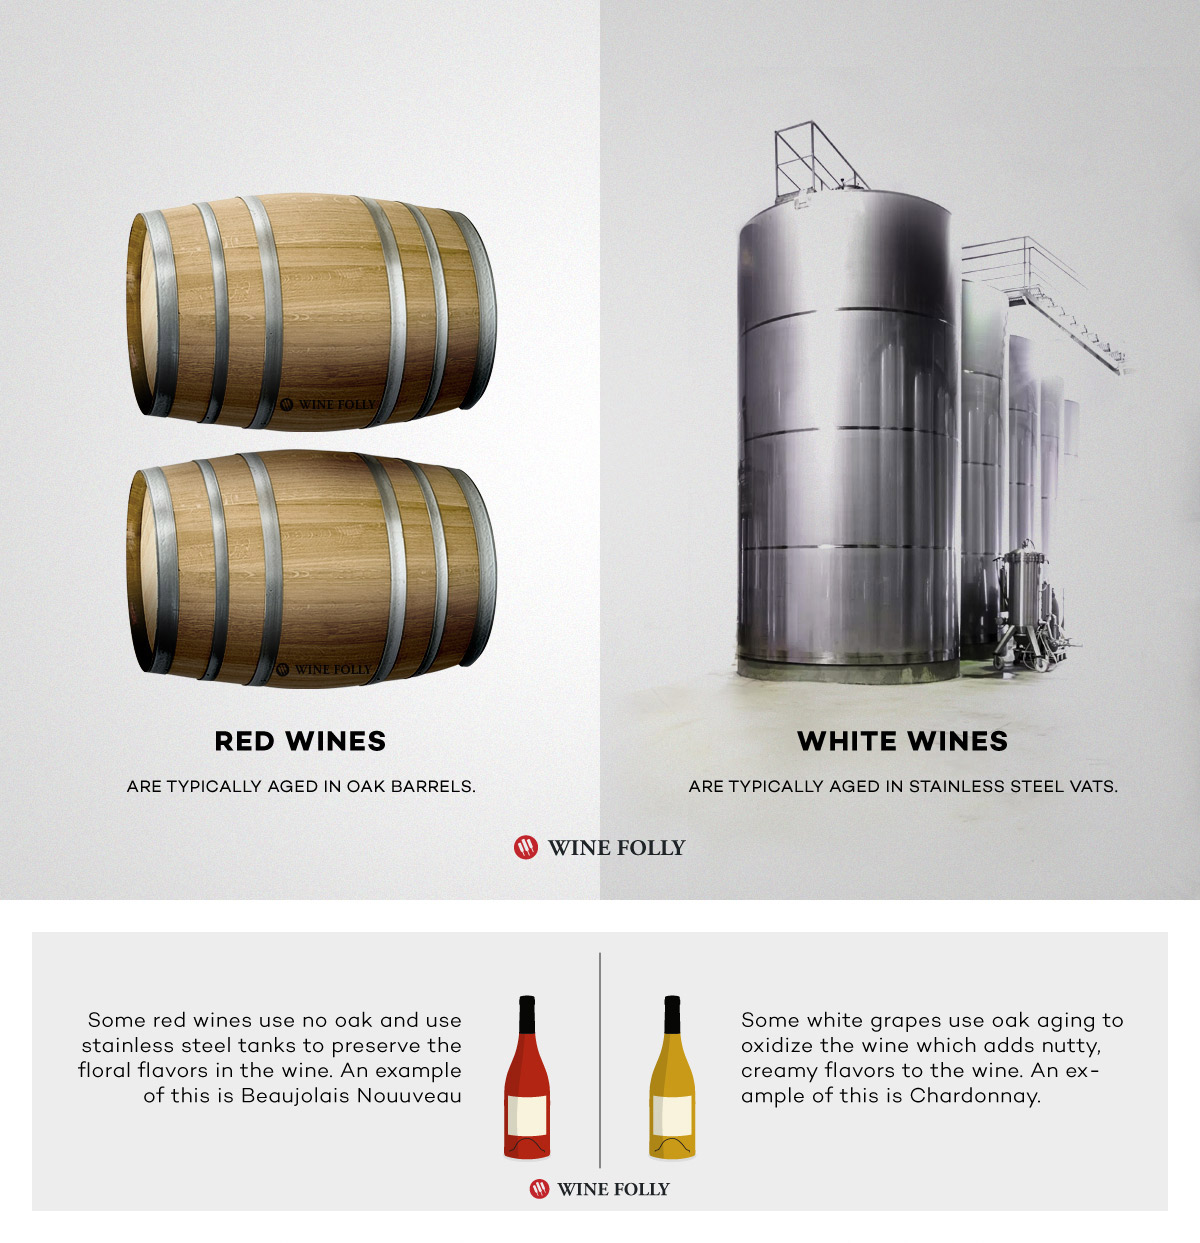 Red wine vs White wine is aged differently stainless steel vs oak barrel aging by Wine Folly